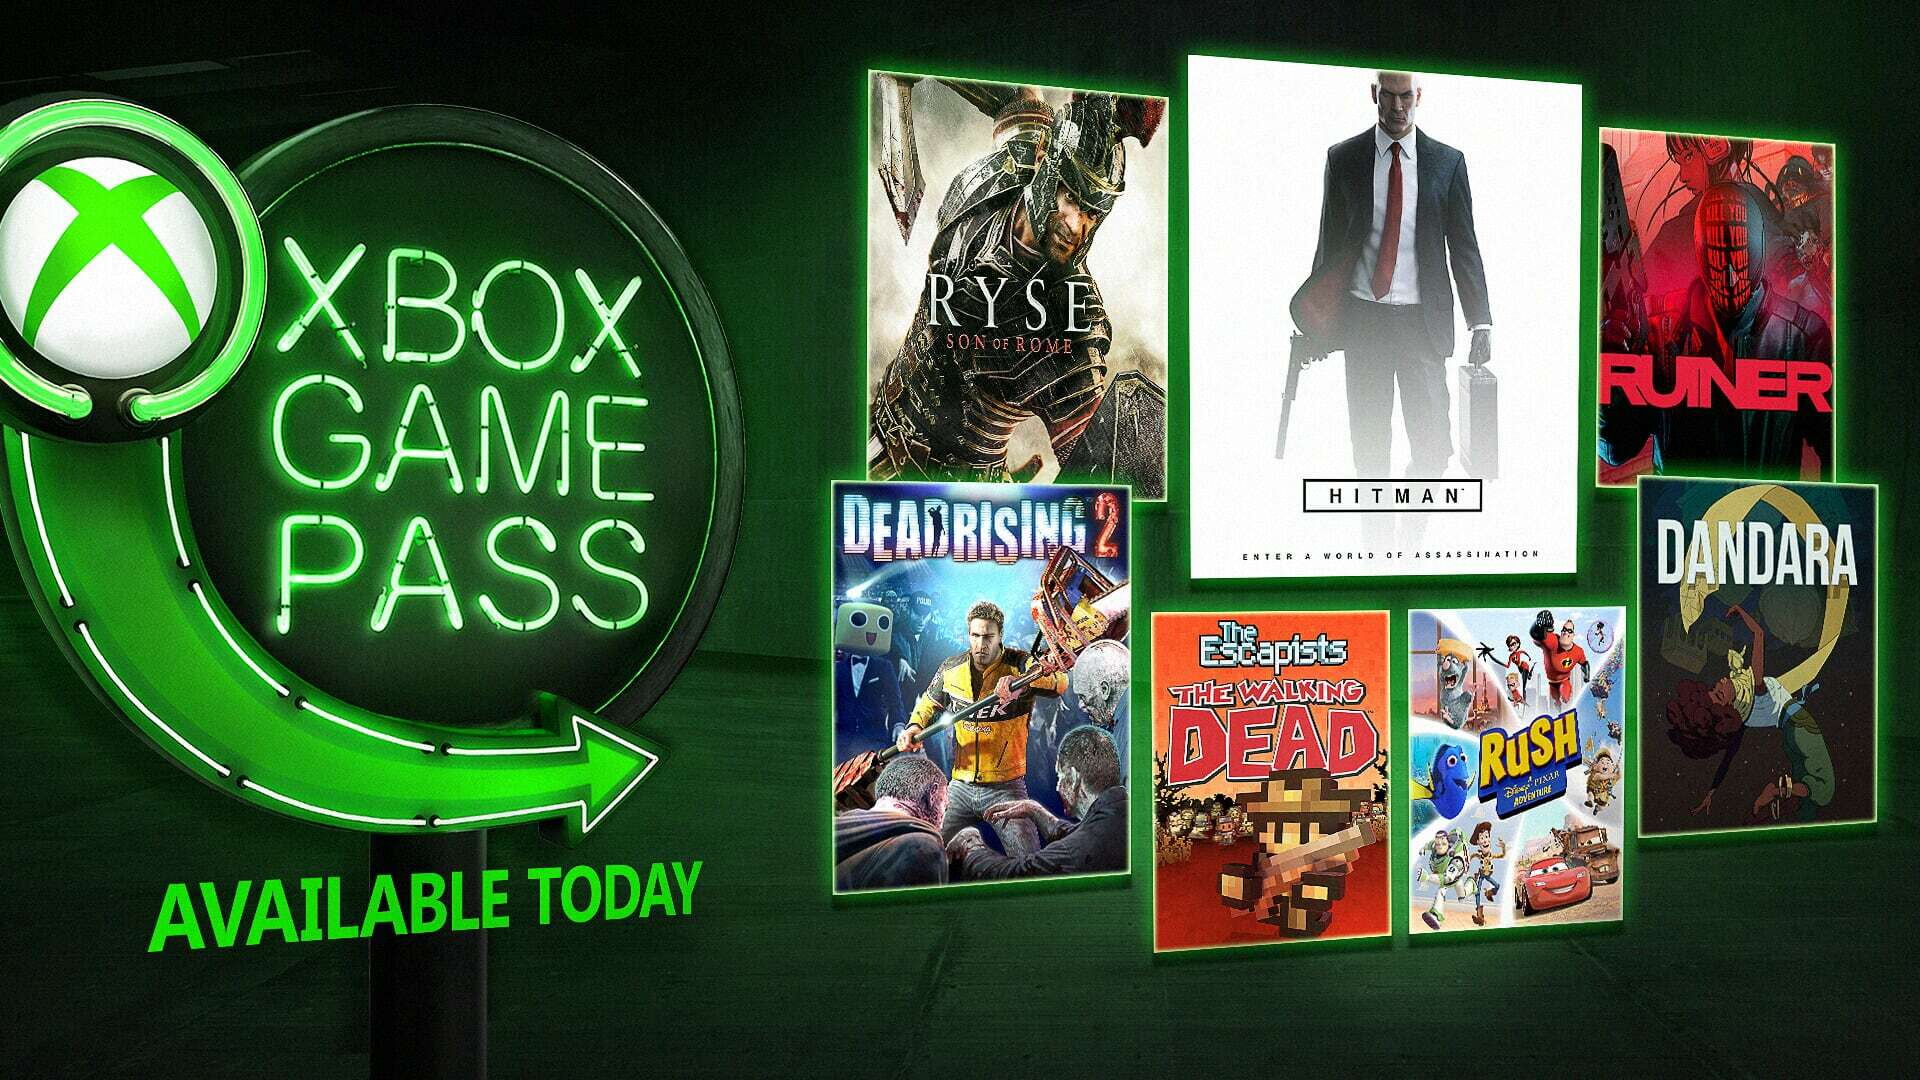 Microsoft Open to Possibility of Services Like Xbox Game Pass on Switch as It Seeks to Blur the Lines Between Devices